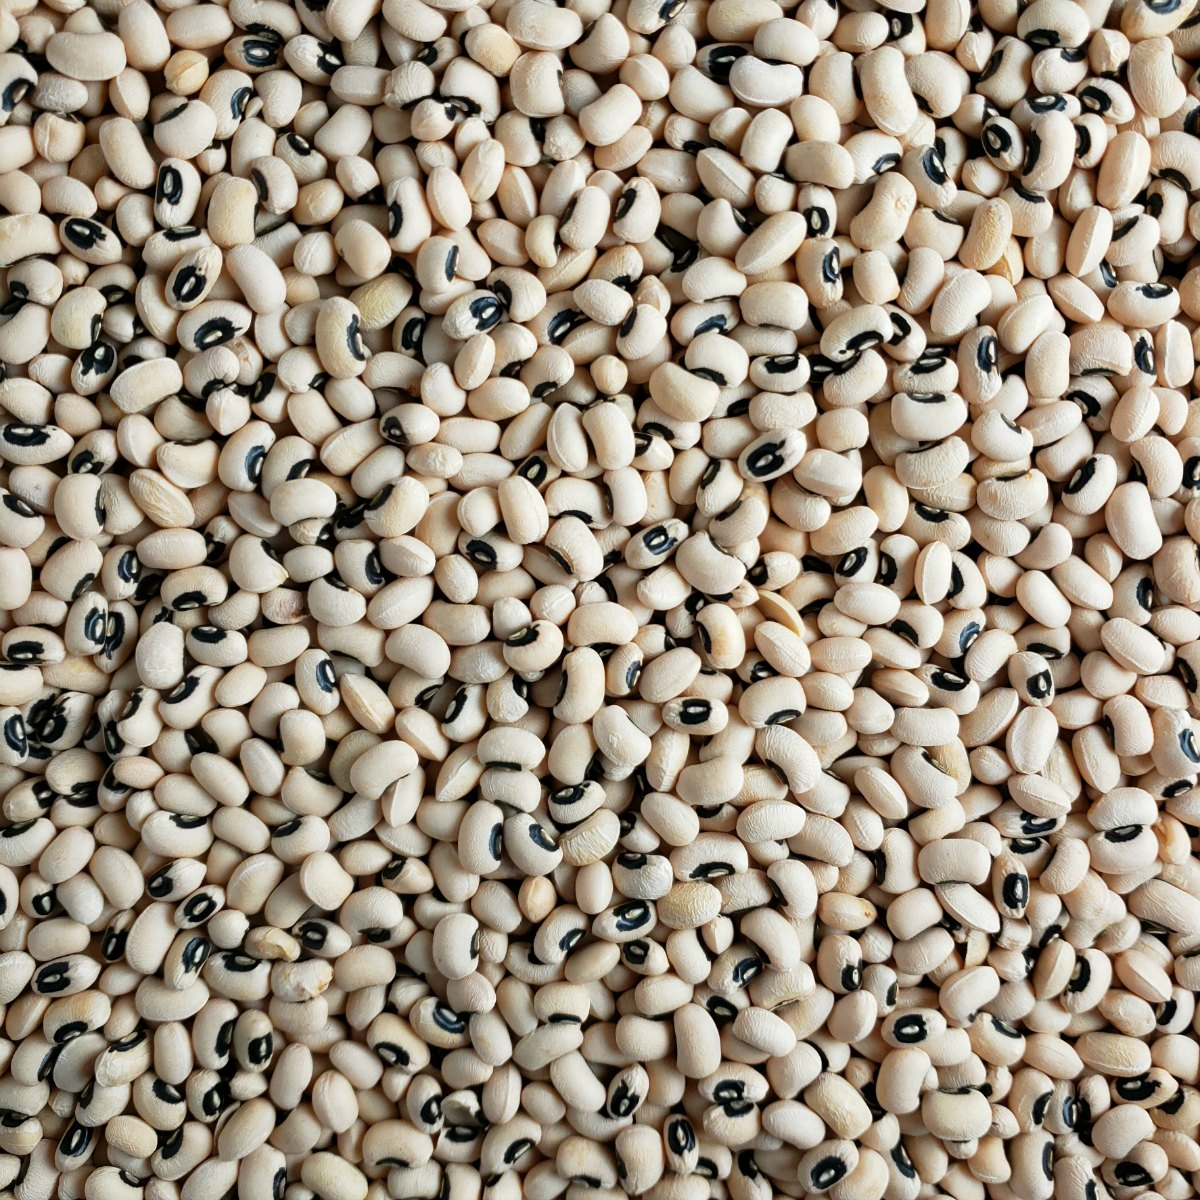 What to Know about Black-Eyed Peas